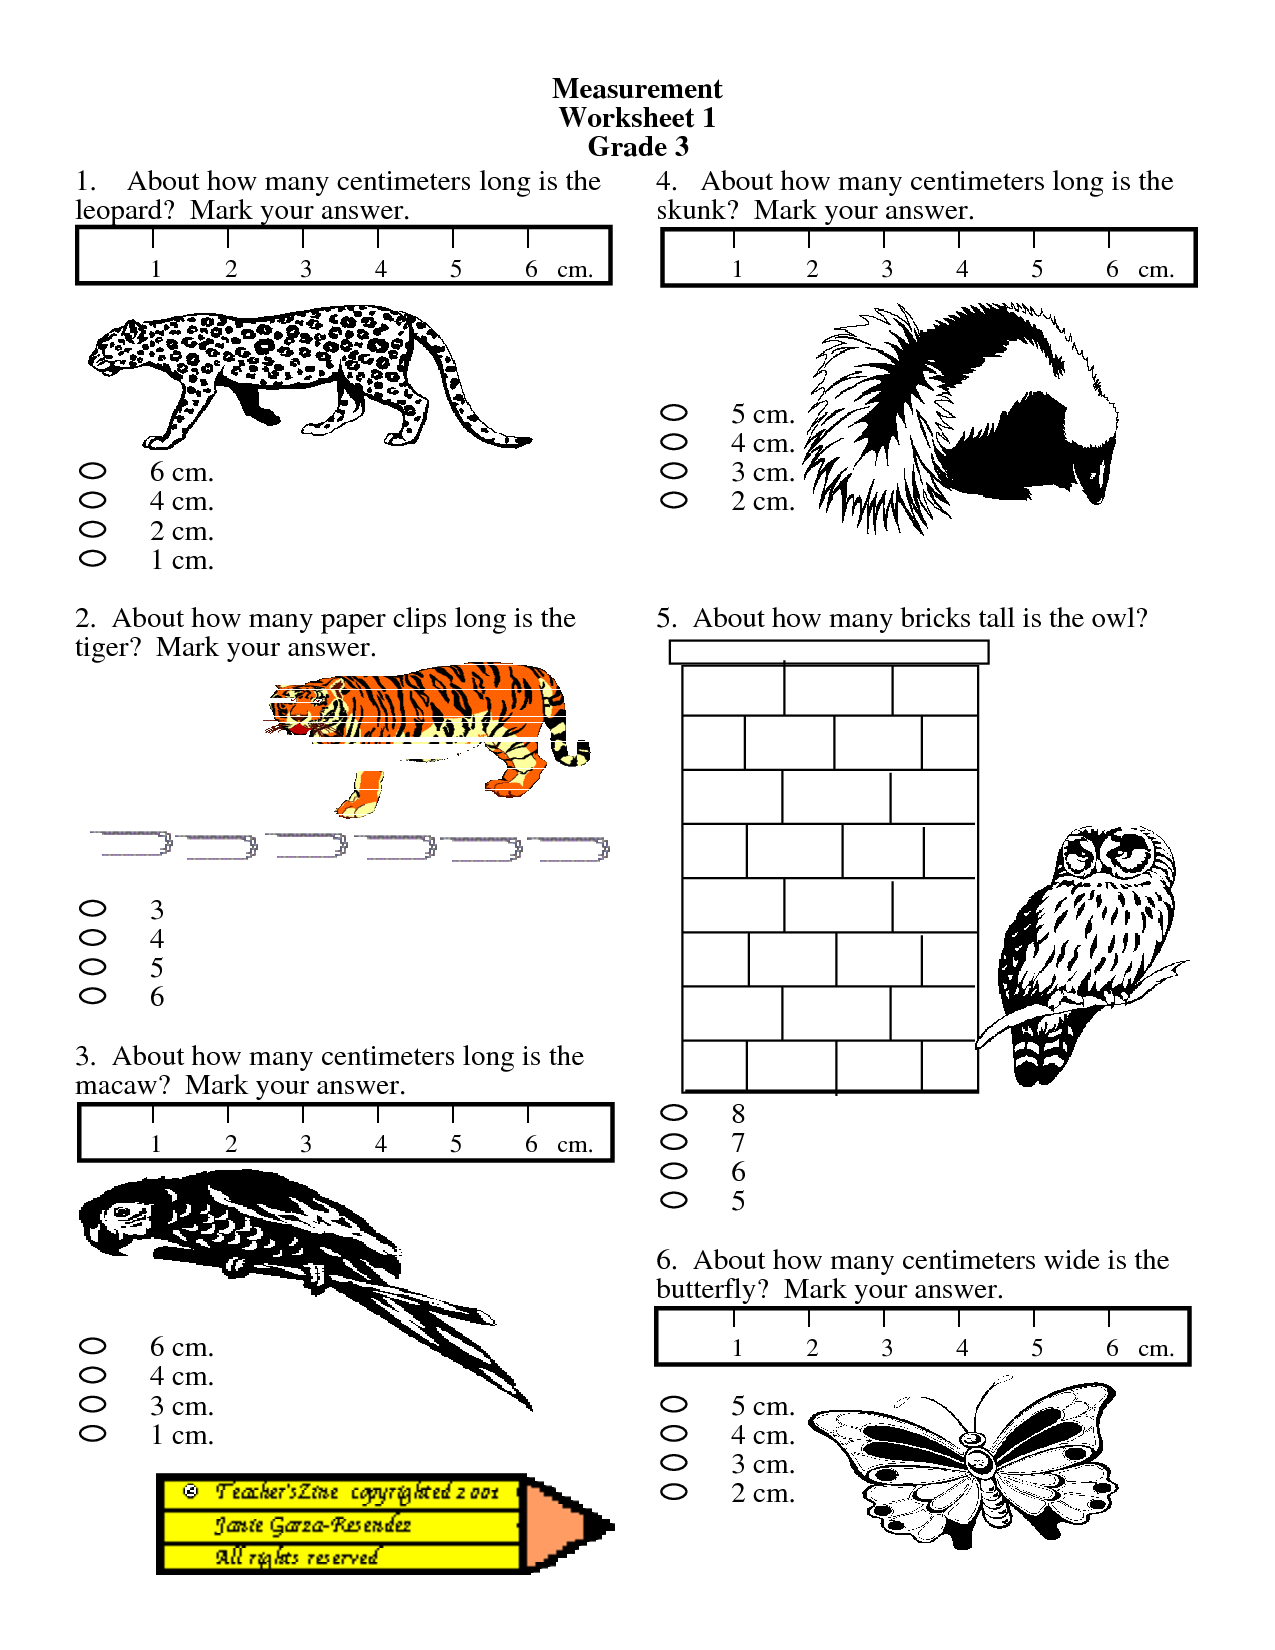 math worksheet : 1000 images about measurement on pinterest  measurement  : Math Worksheets Measurement